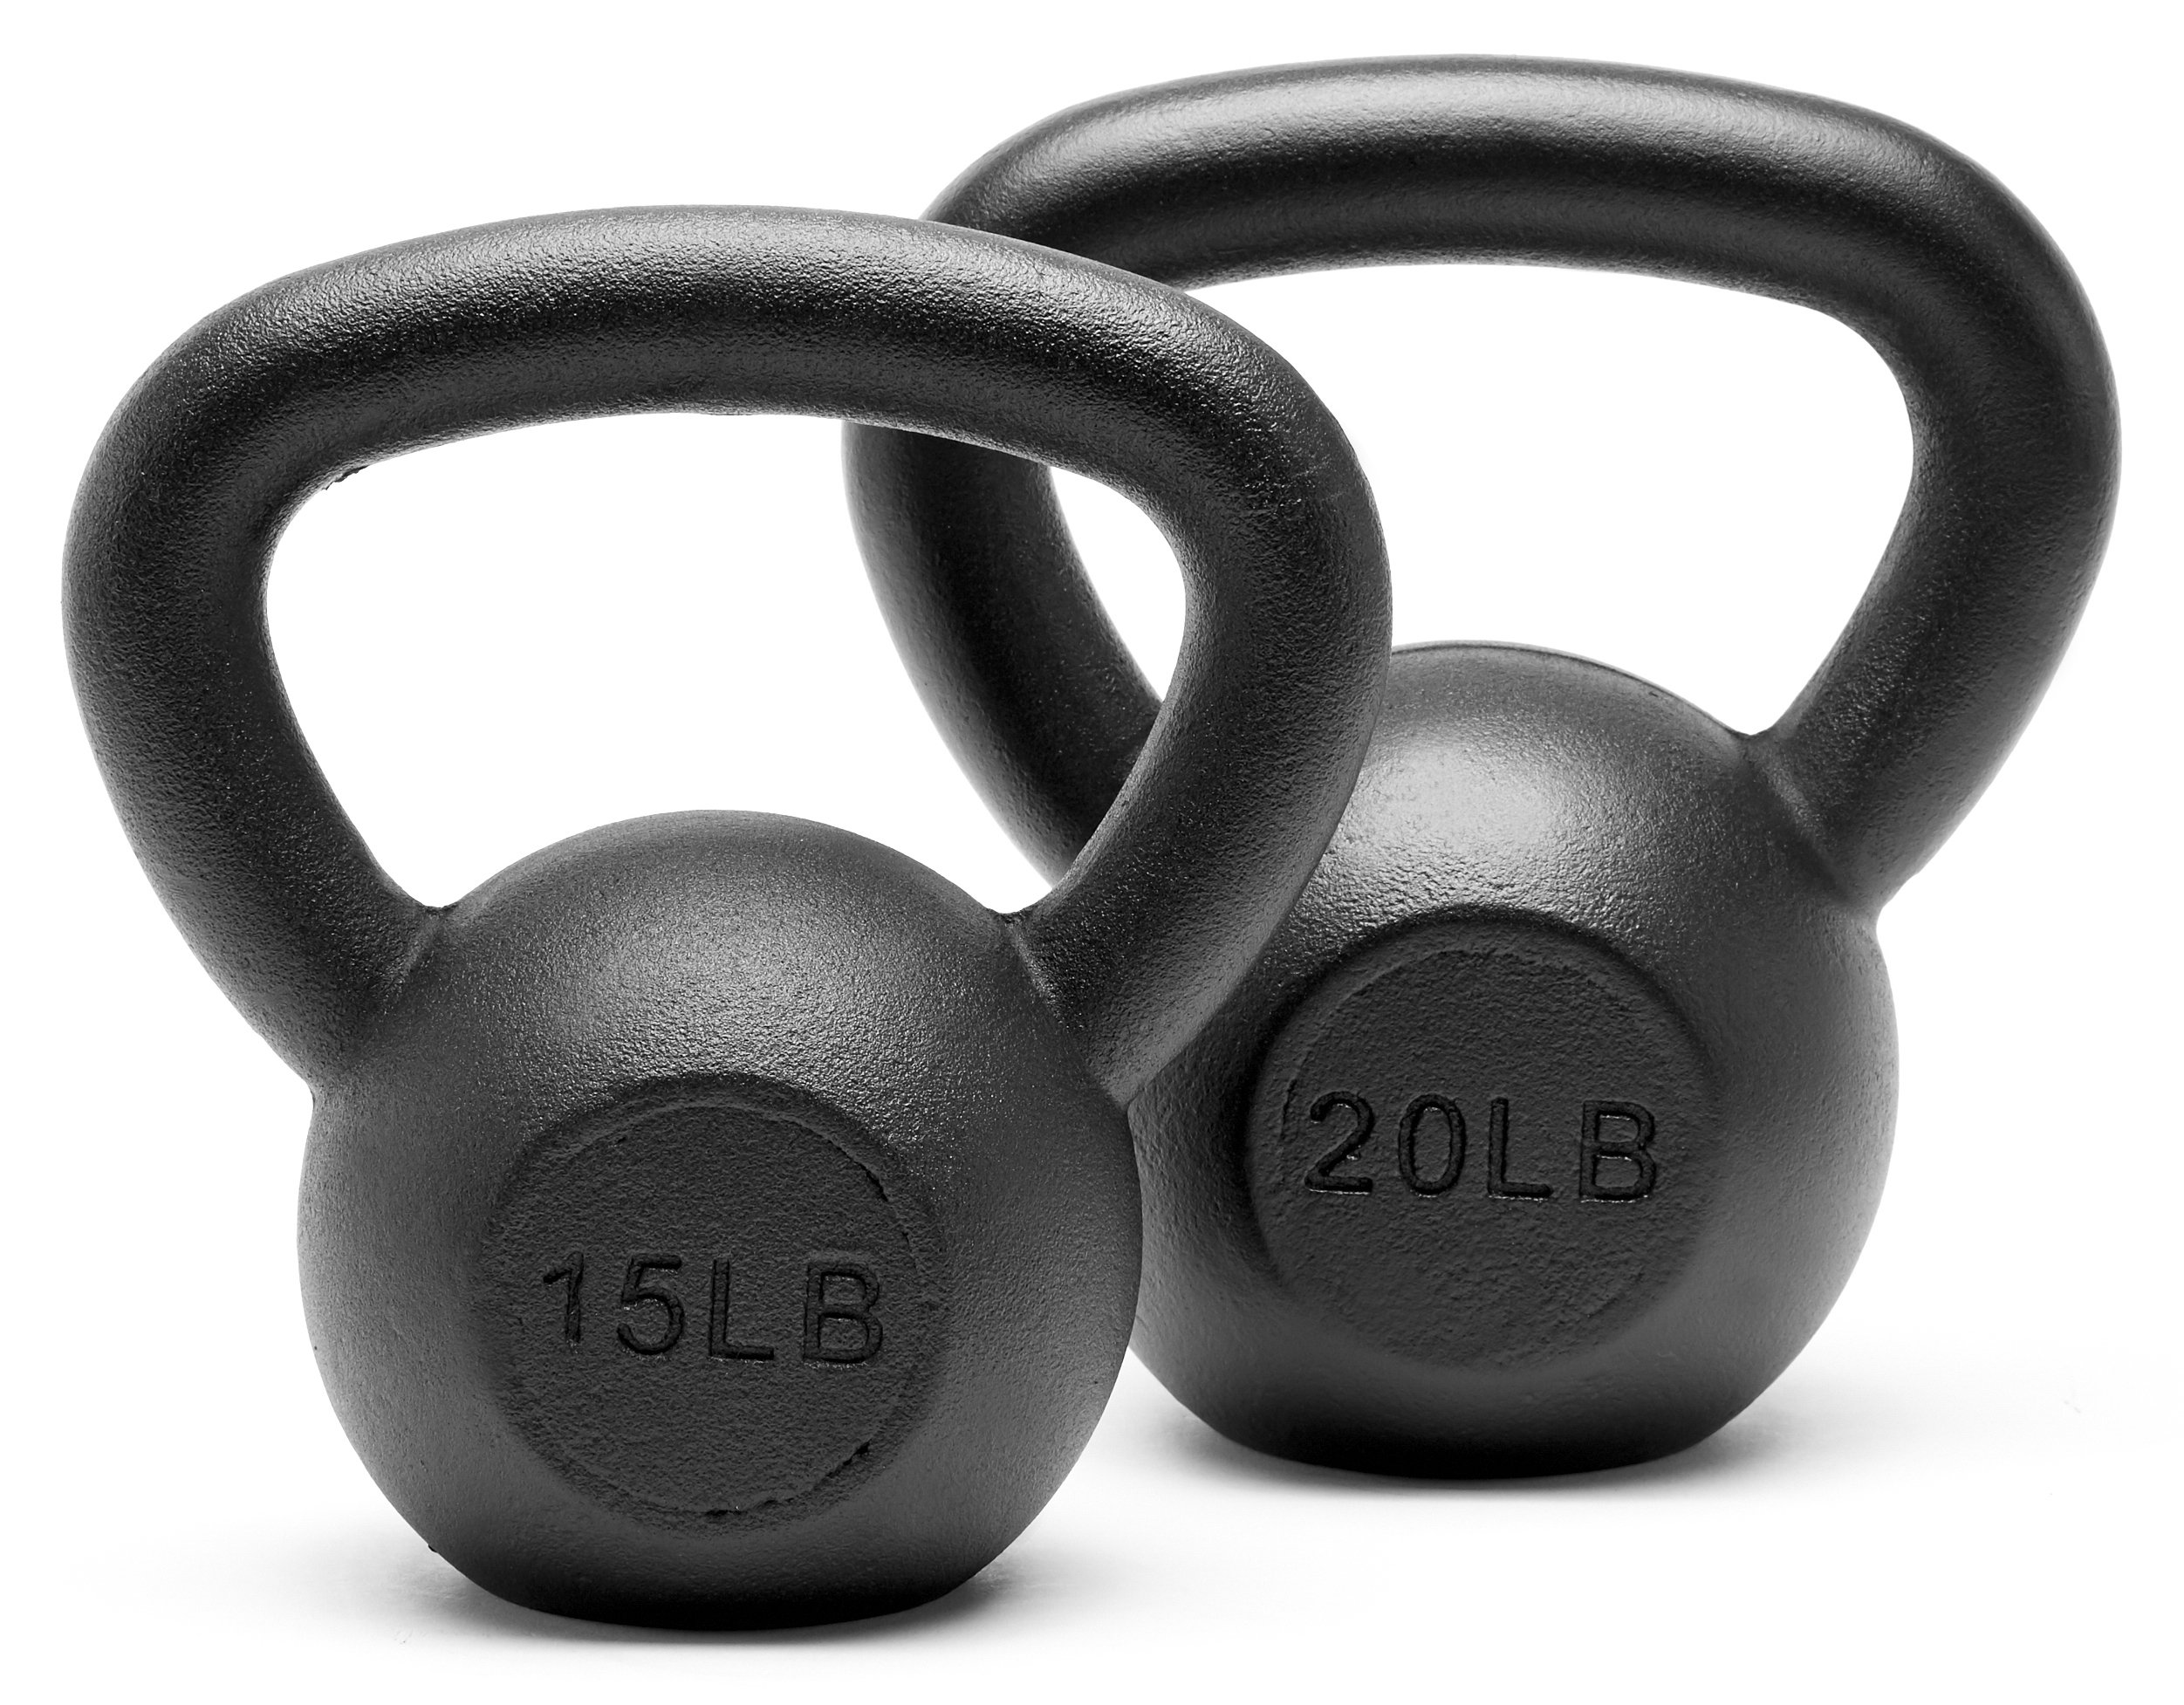 Unipack Powder Coated Solid Cast Iron Kettlebell Weights Set- 15lb+20lb